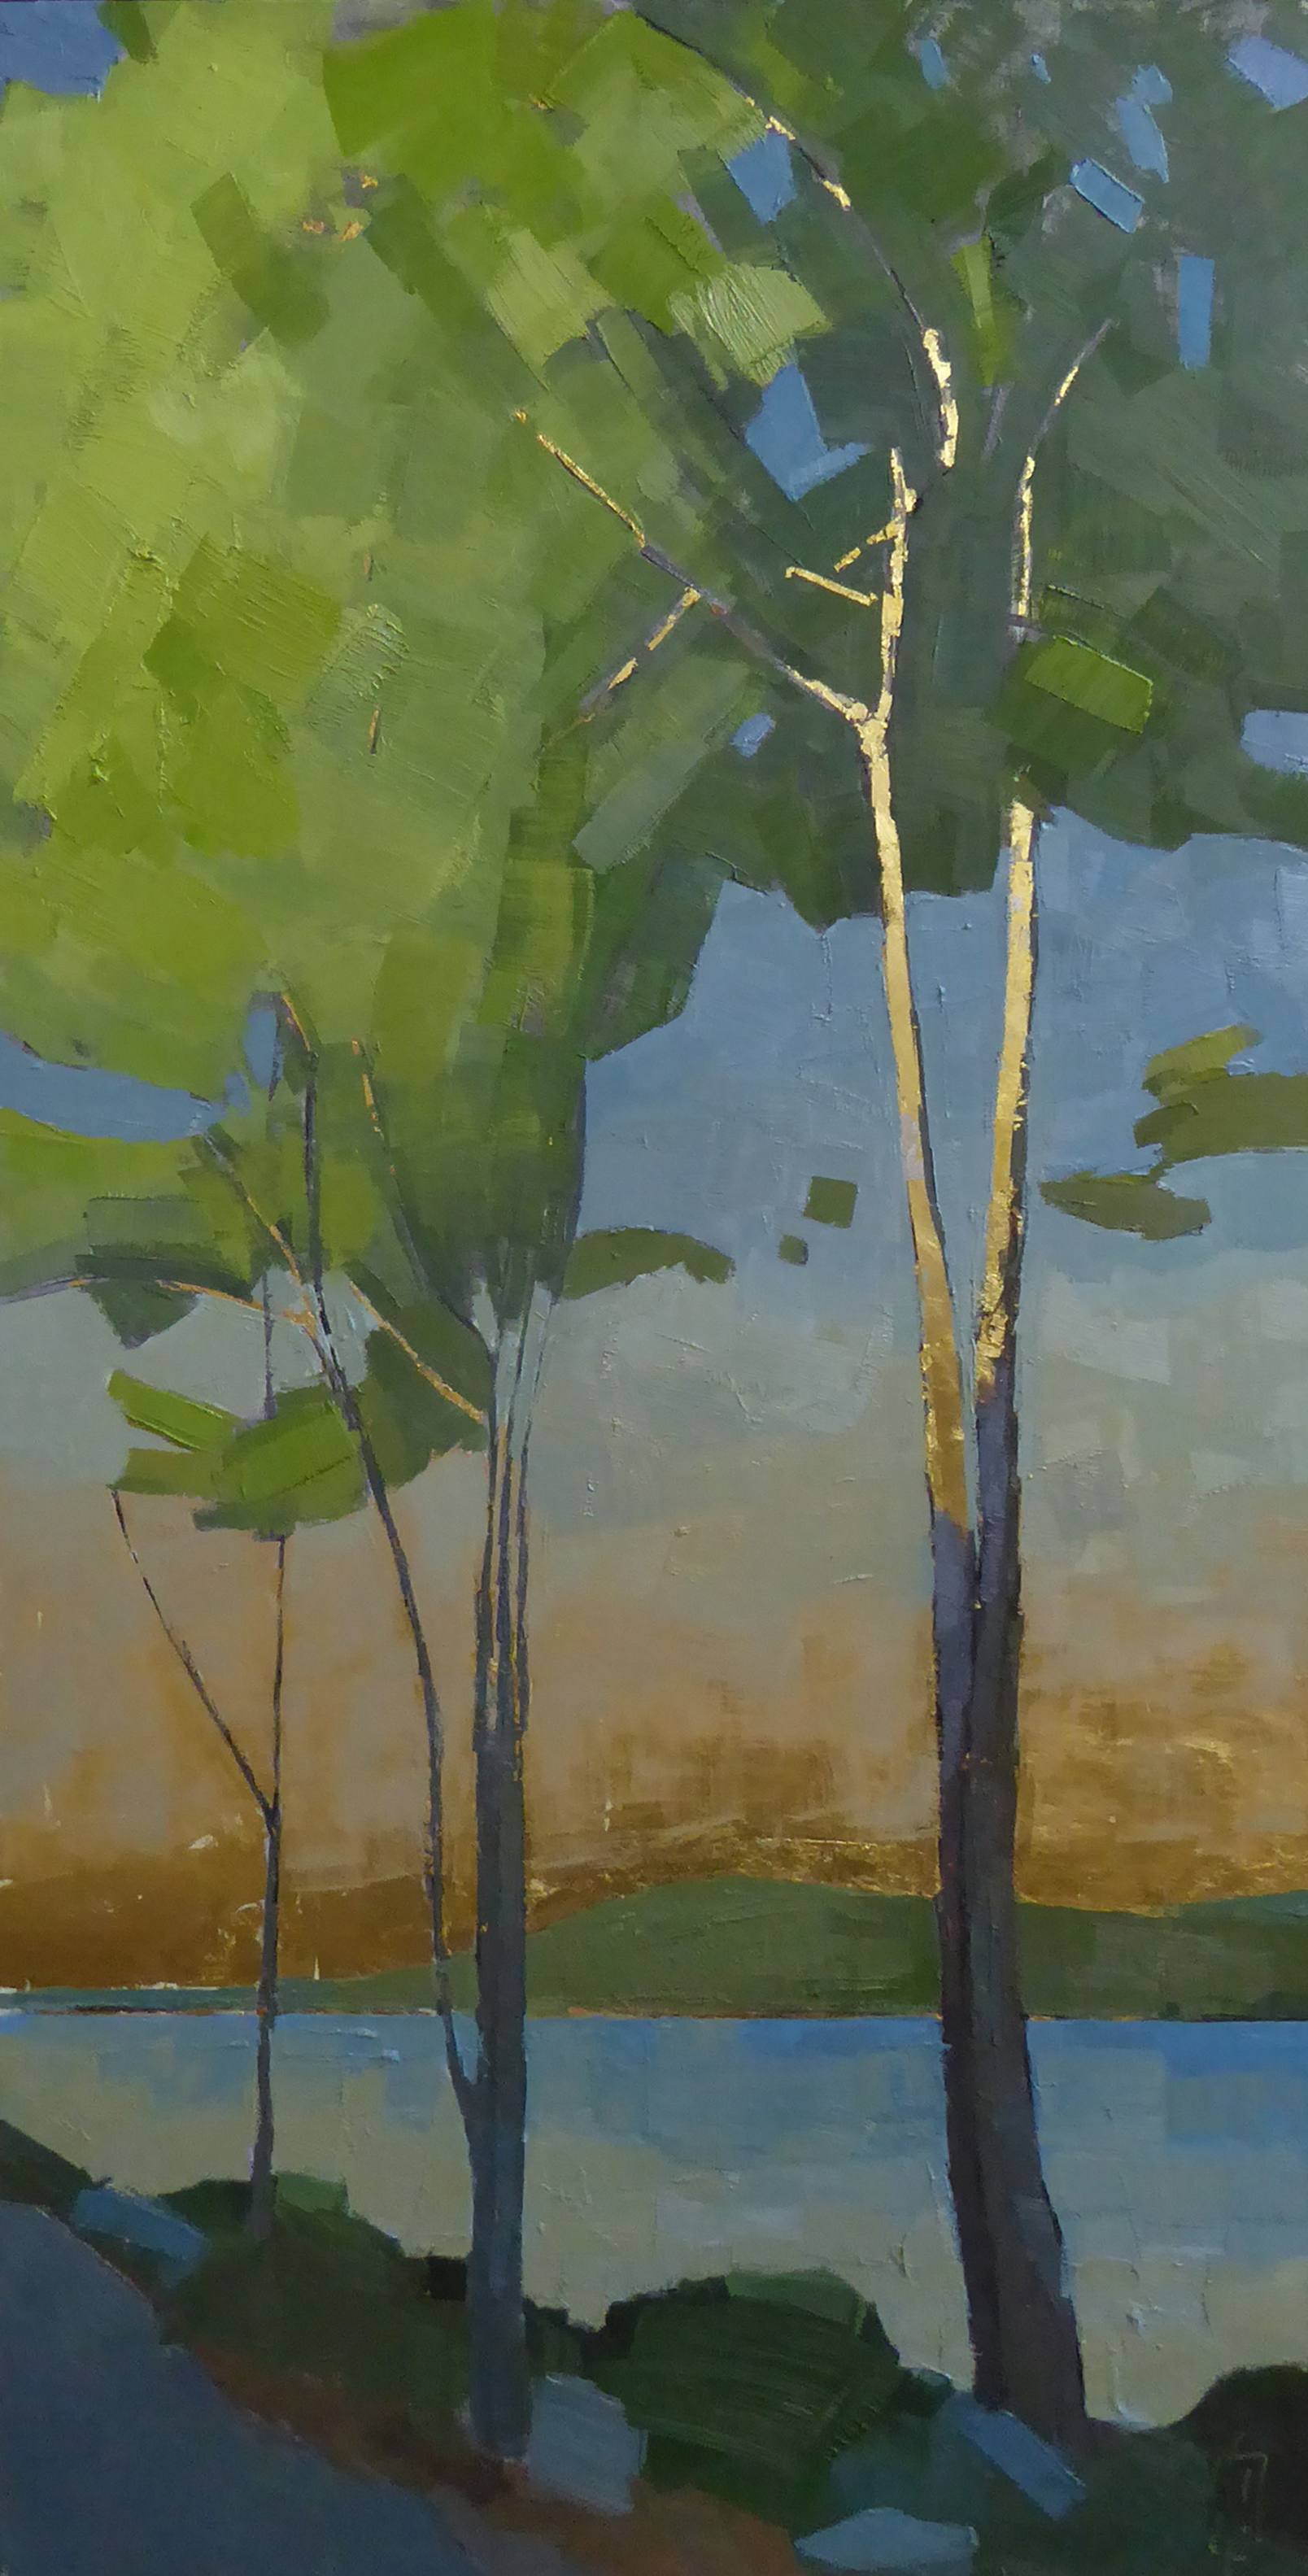 In the Morning  18 x 36 oil and 23K gold on cradled panel  Islesford Artists Gallery  sold